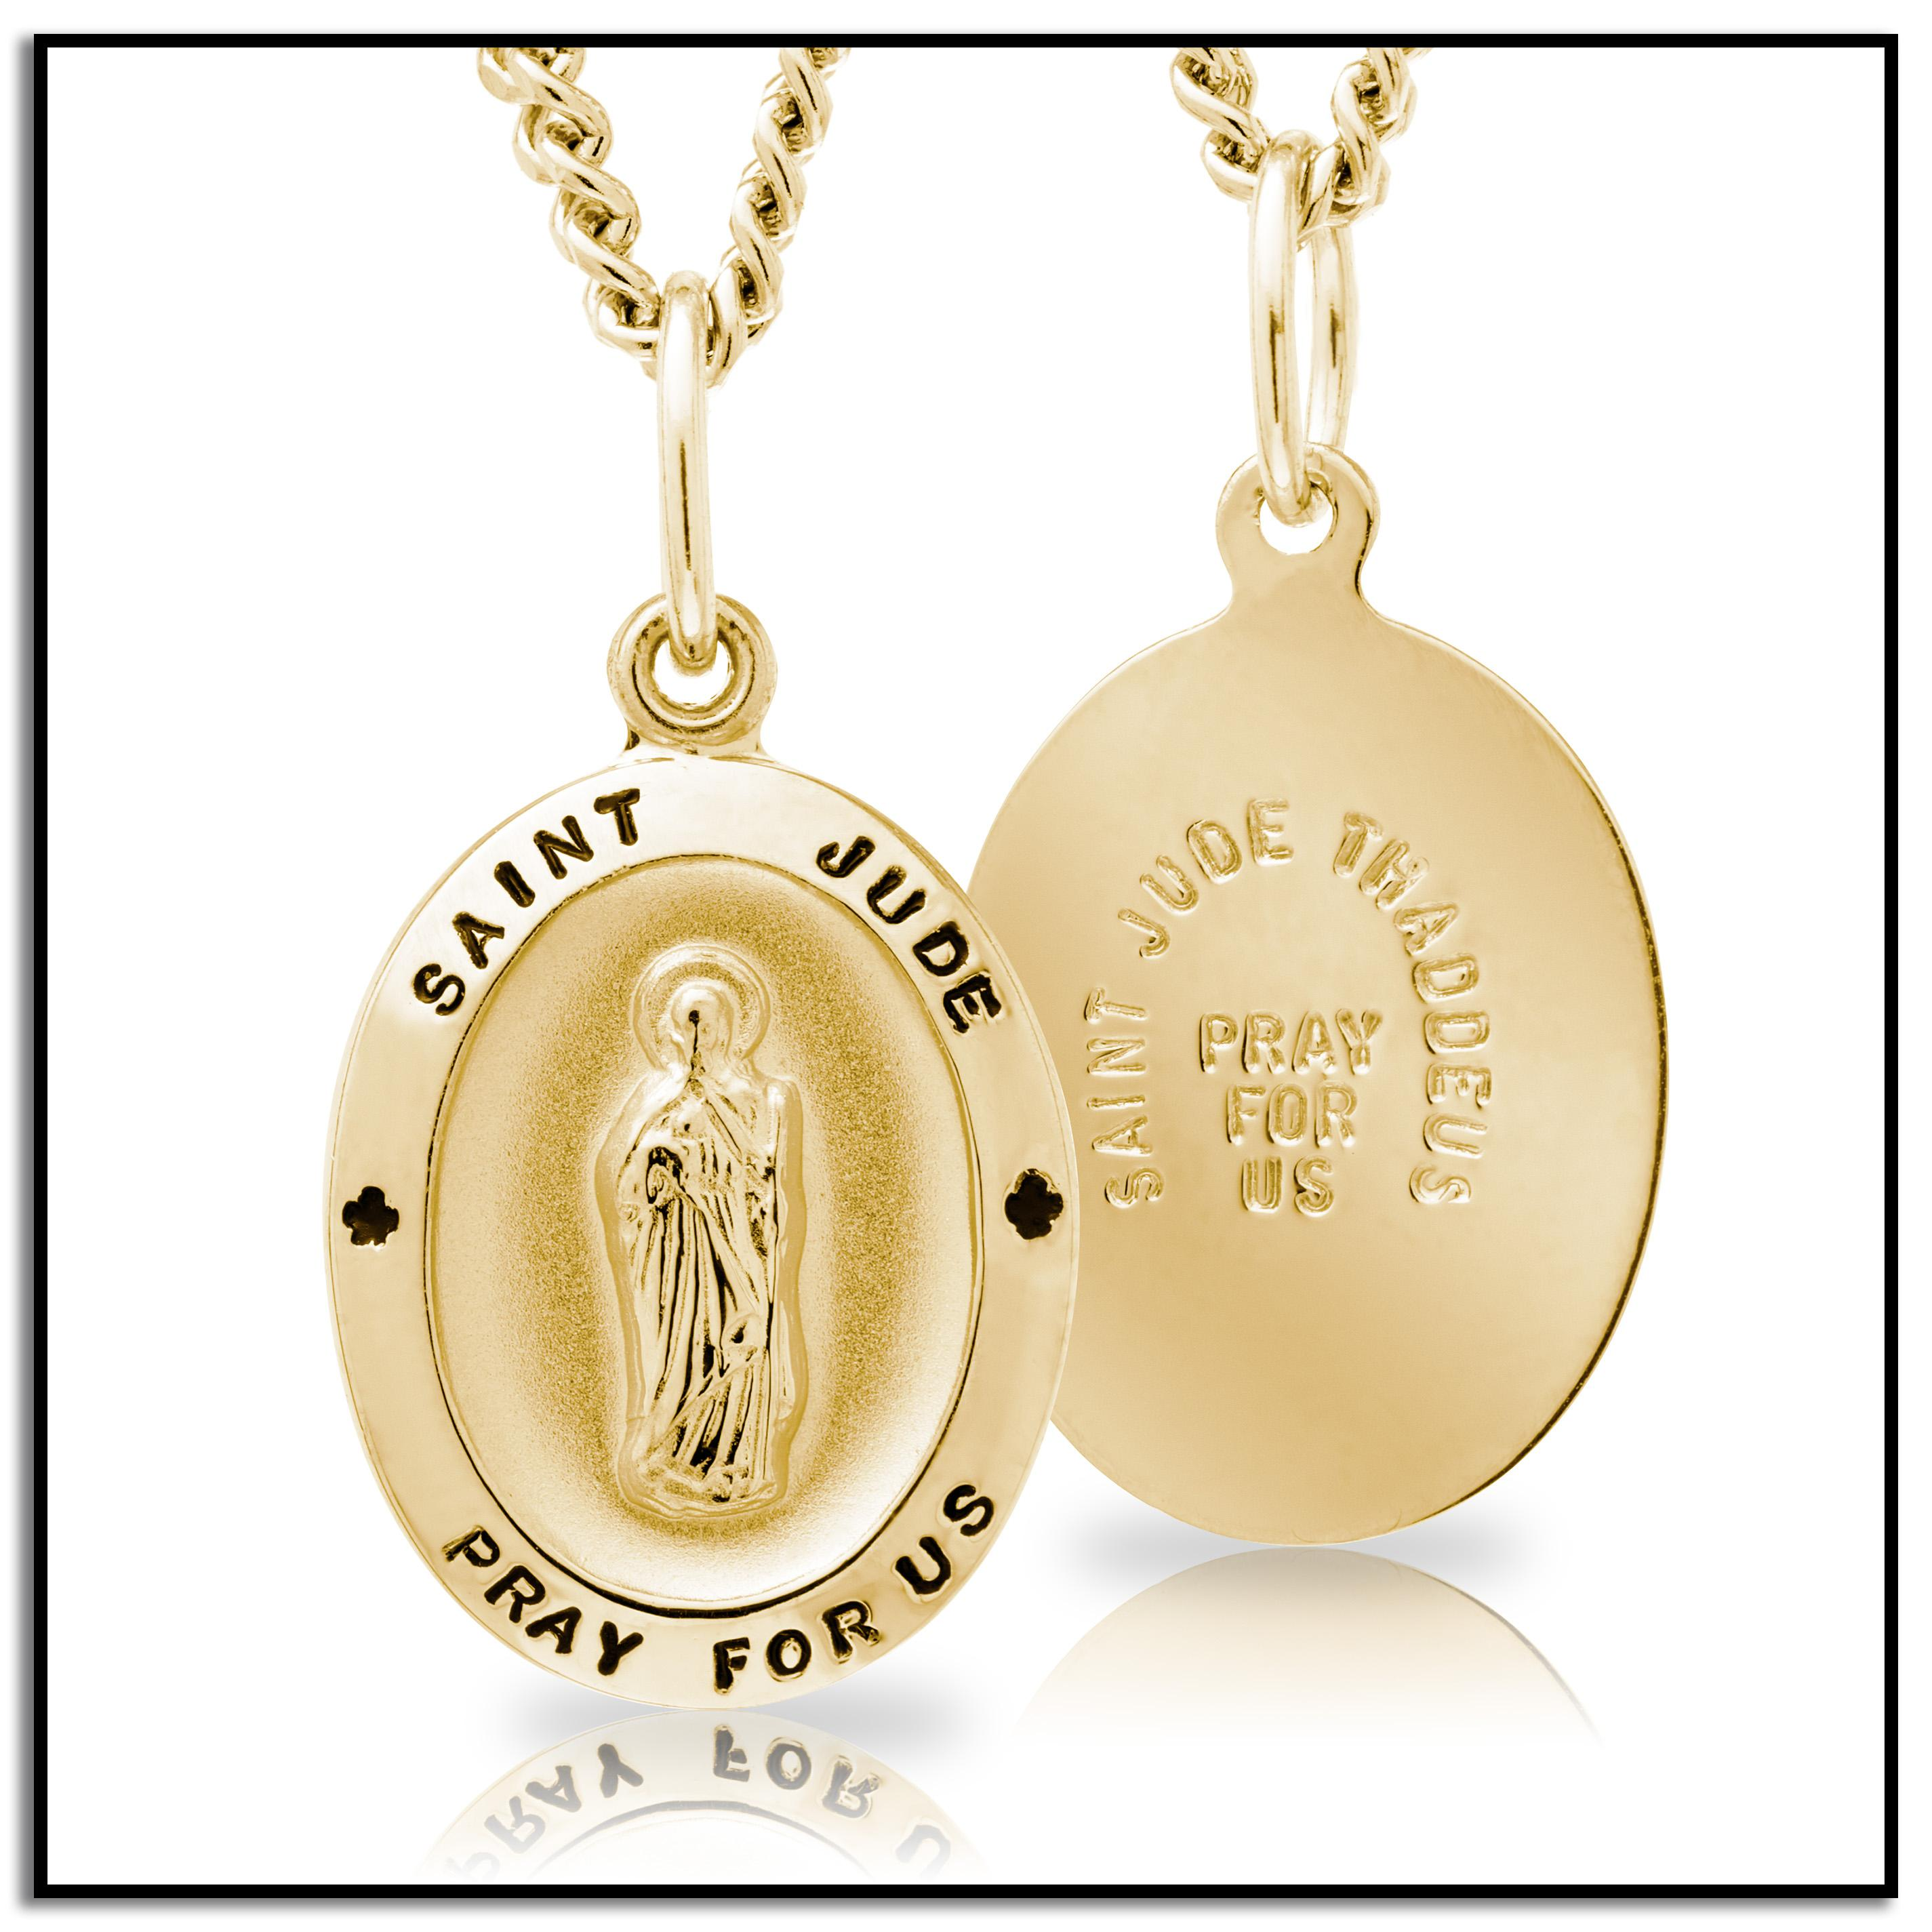 pendant stl benedictus model cgtrader saint printable print gold pendants models jewelry